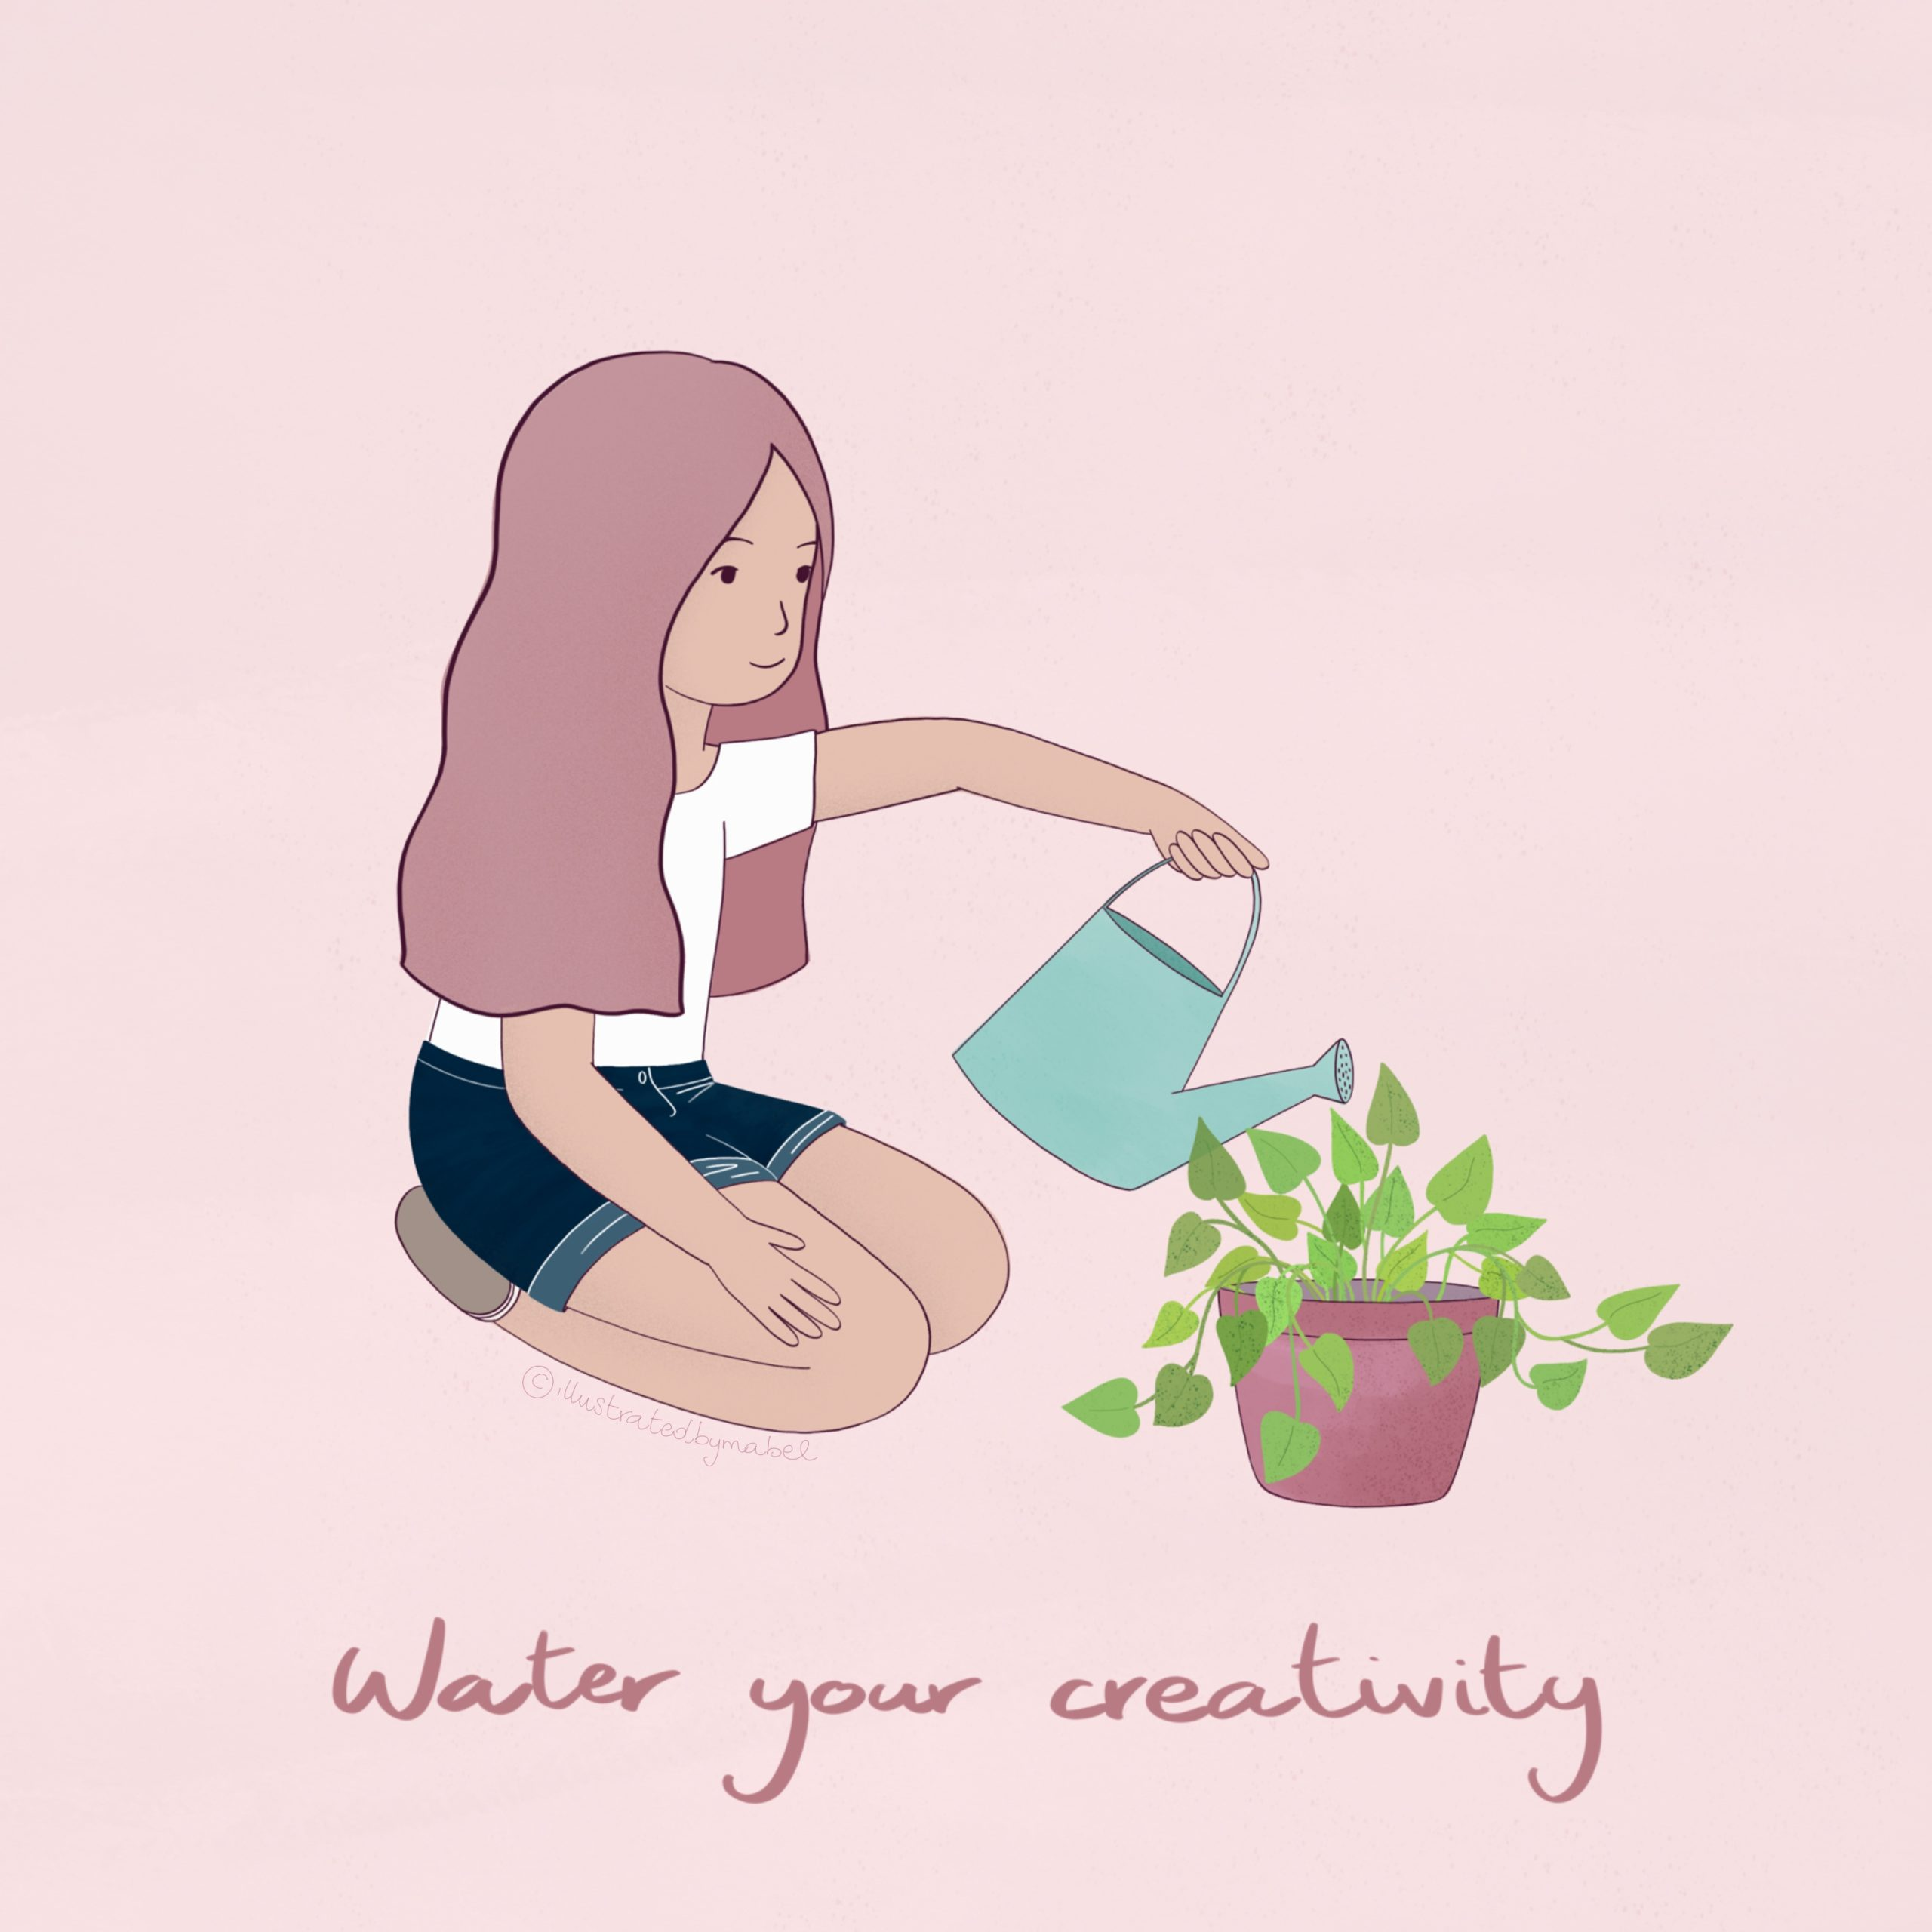 illustration of a girl watering a plant that symbolises her creativity